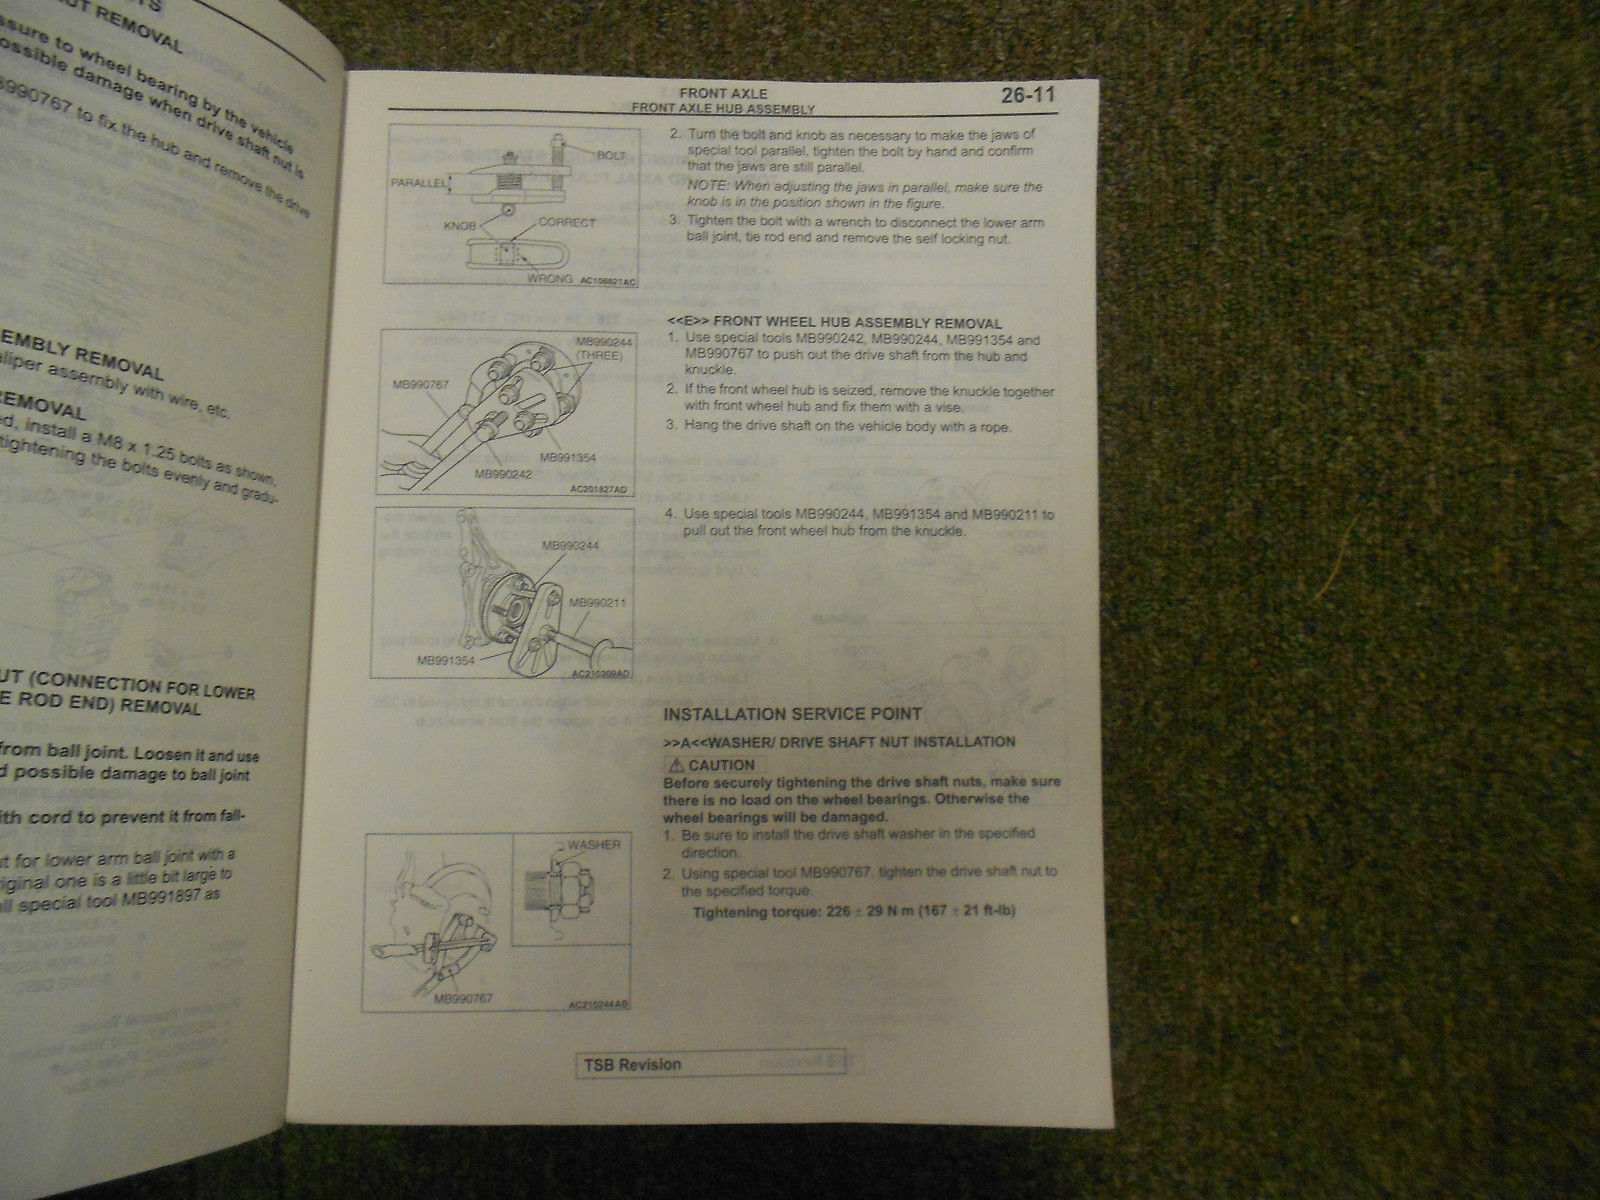 2004 MITSUBISHI Galant Service Repair Shop Manual VOL 3 OEM 04 FACTORY OEM 04 image 9